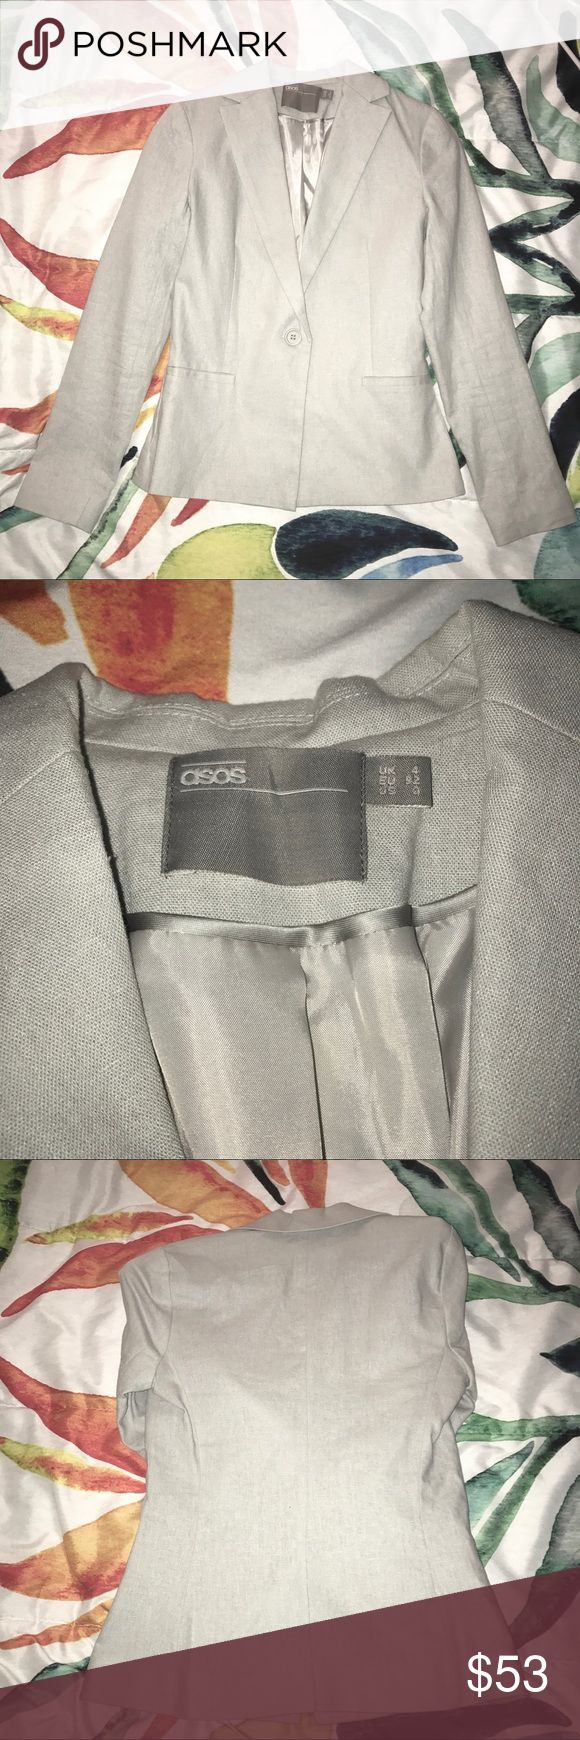 ASOS light gray textured blazer This light gray textured blazer from ASOS is perfect over a dress or with jeans. Long sleeves that also look great cuffed. Worn just a few times and in perfect condition. ASOS Jackets & Coats Blazers